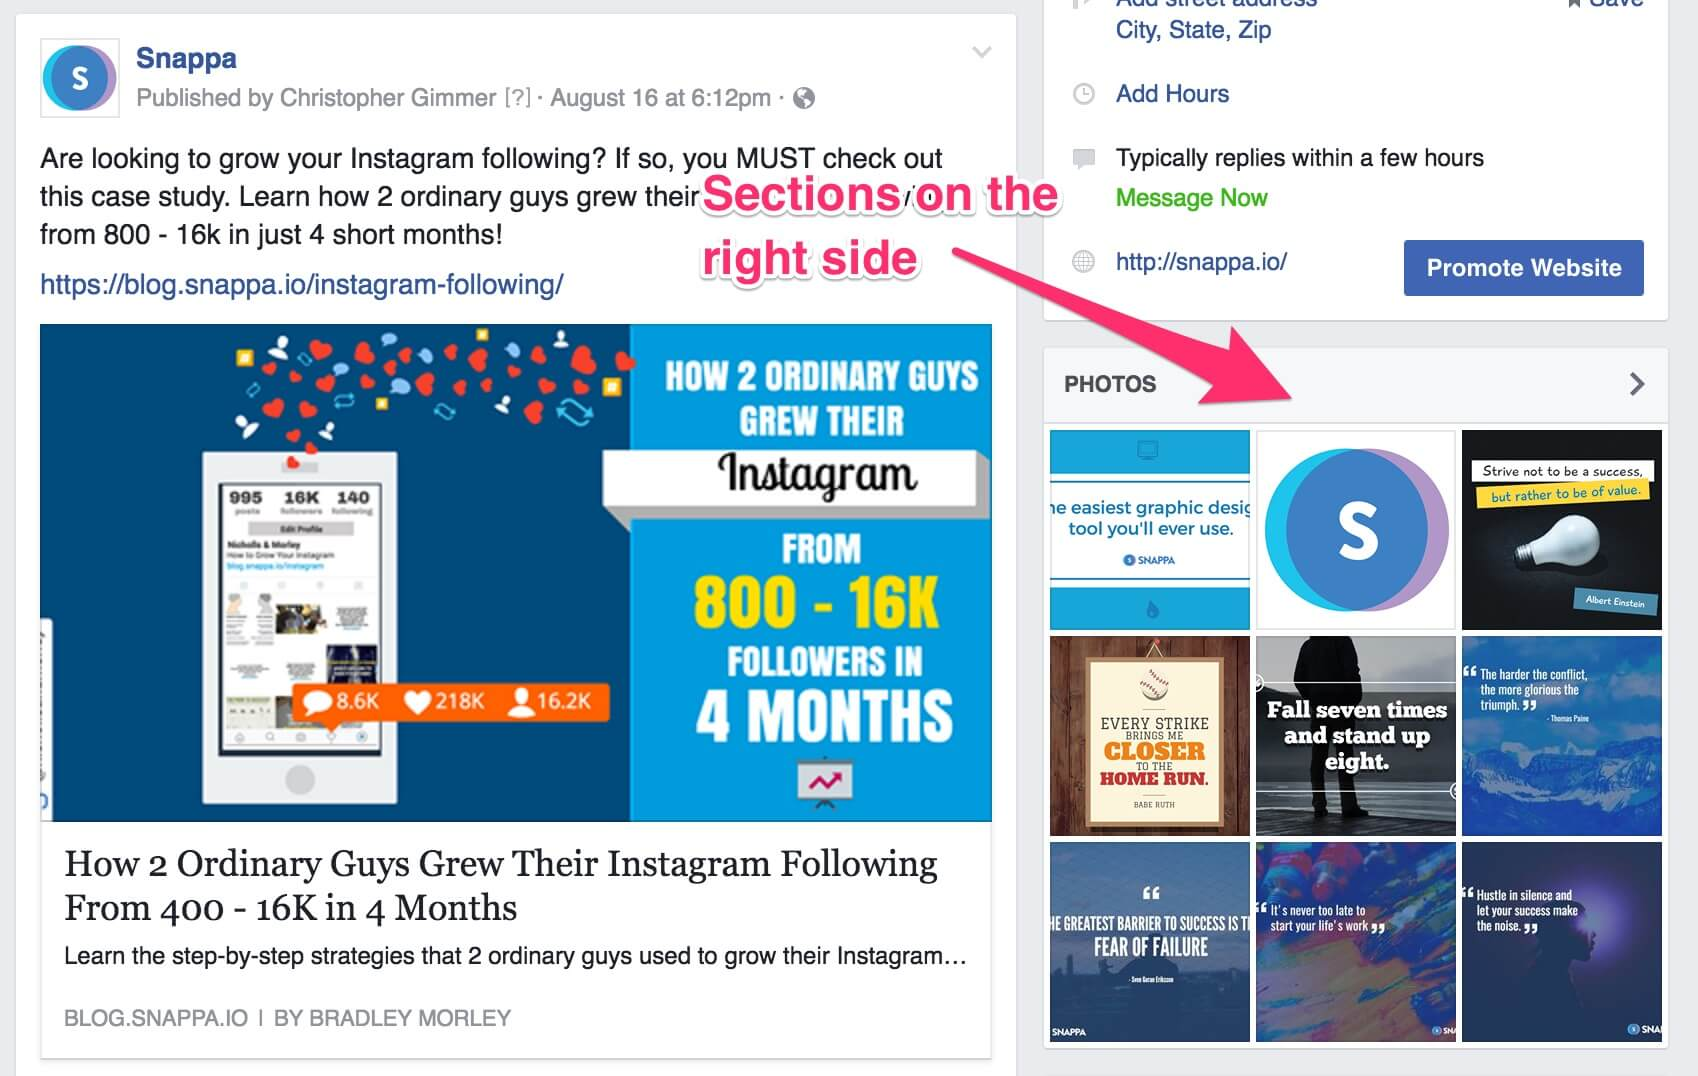 7 Things You Need to Know About the New Facebook Page Layout